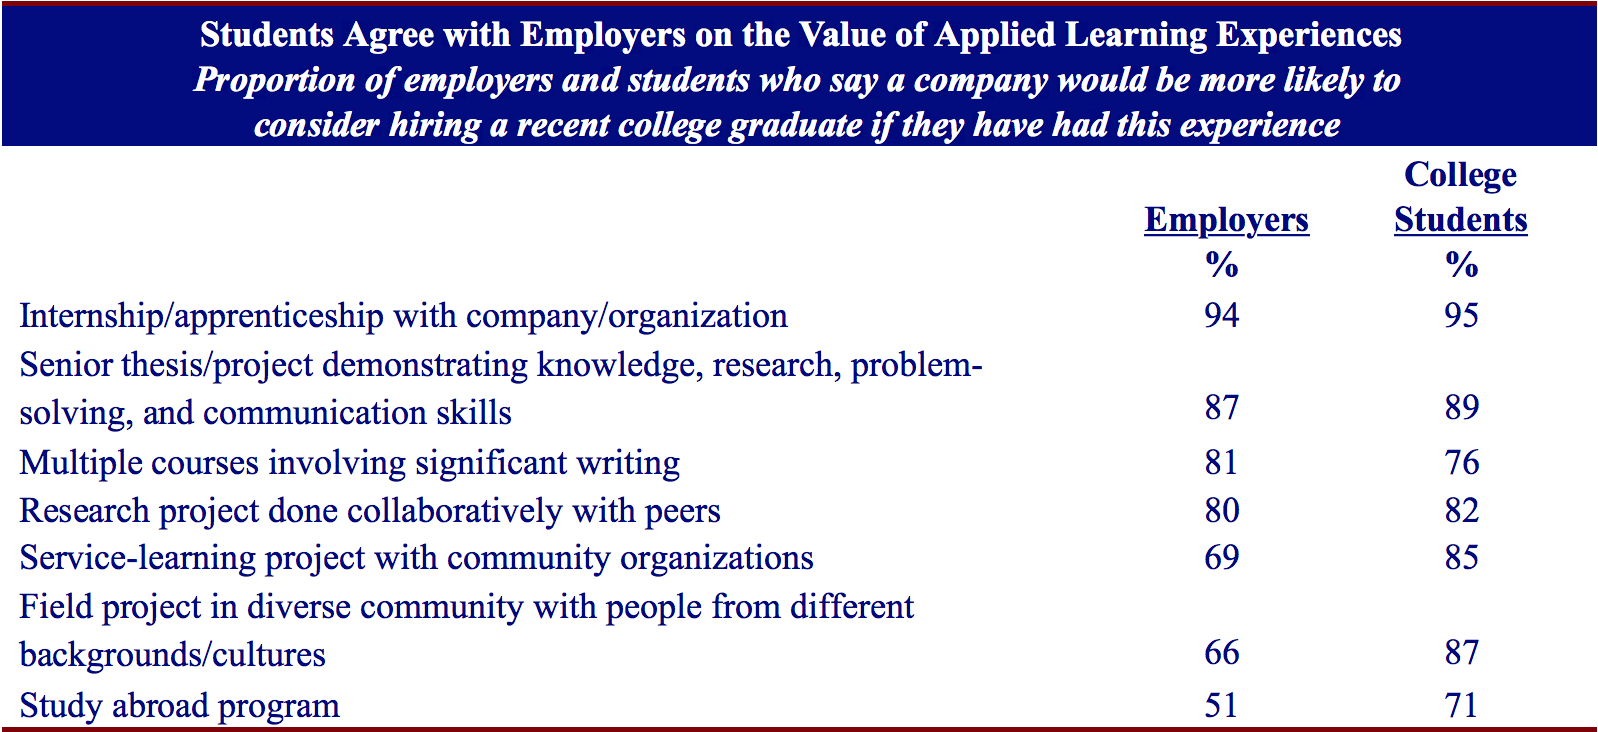 The table shows which applied learning experiences employers and students value most. The highest value placed by both stakeholders is on internships, senior theses, coursework and collaborative work, and service-learning, field projects, and study abroad programs rounding out the list.